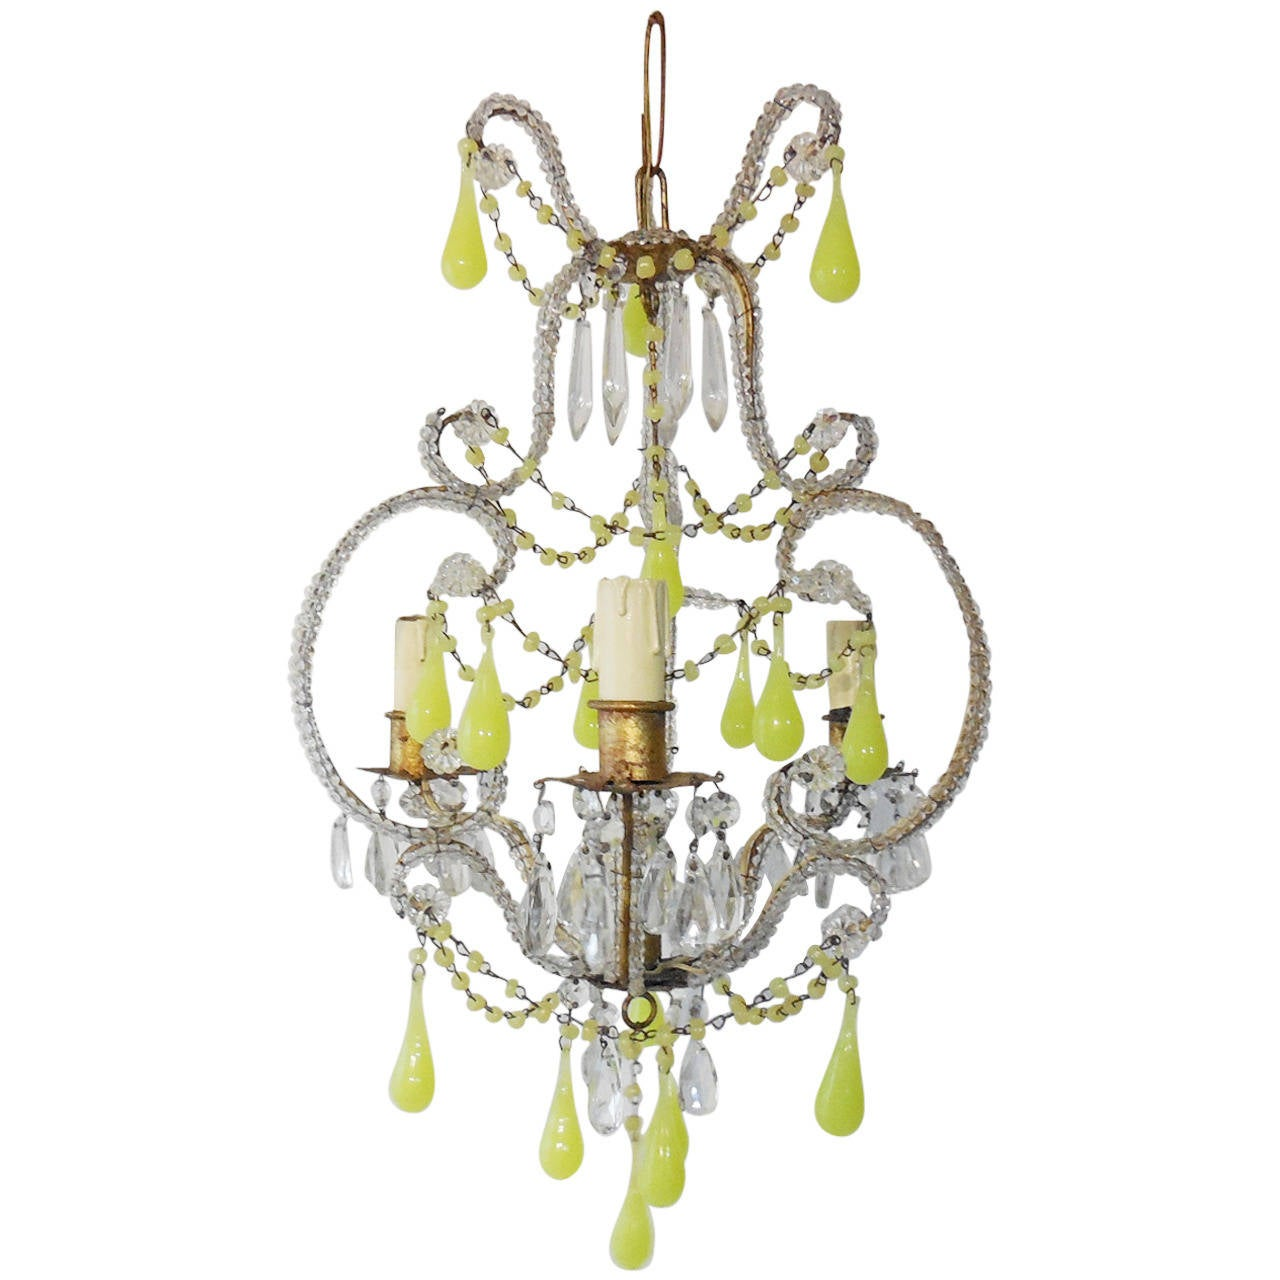 French crystal beaded yellow opaline drops and beads chandelier at 1stdibs - Chandelier glass beads ...